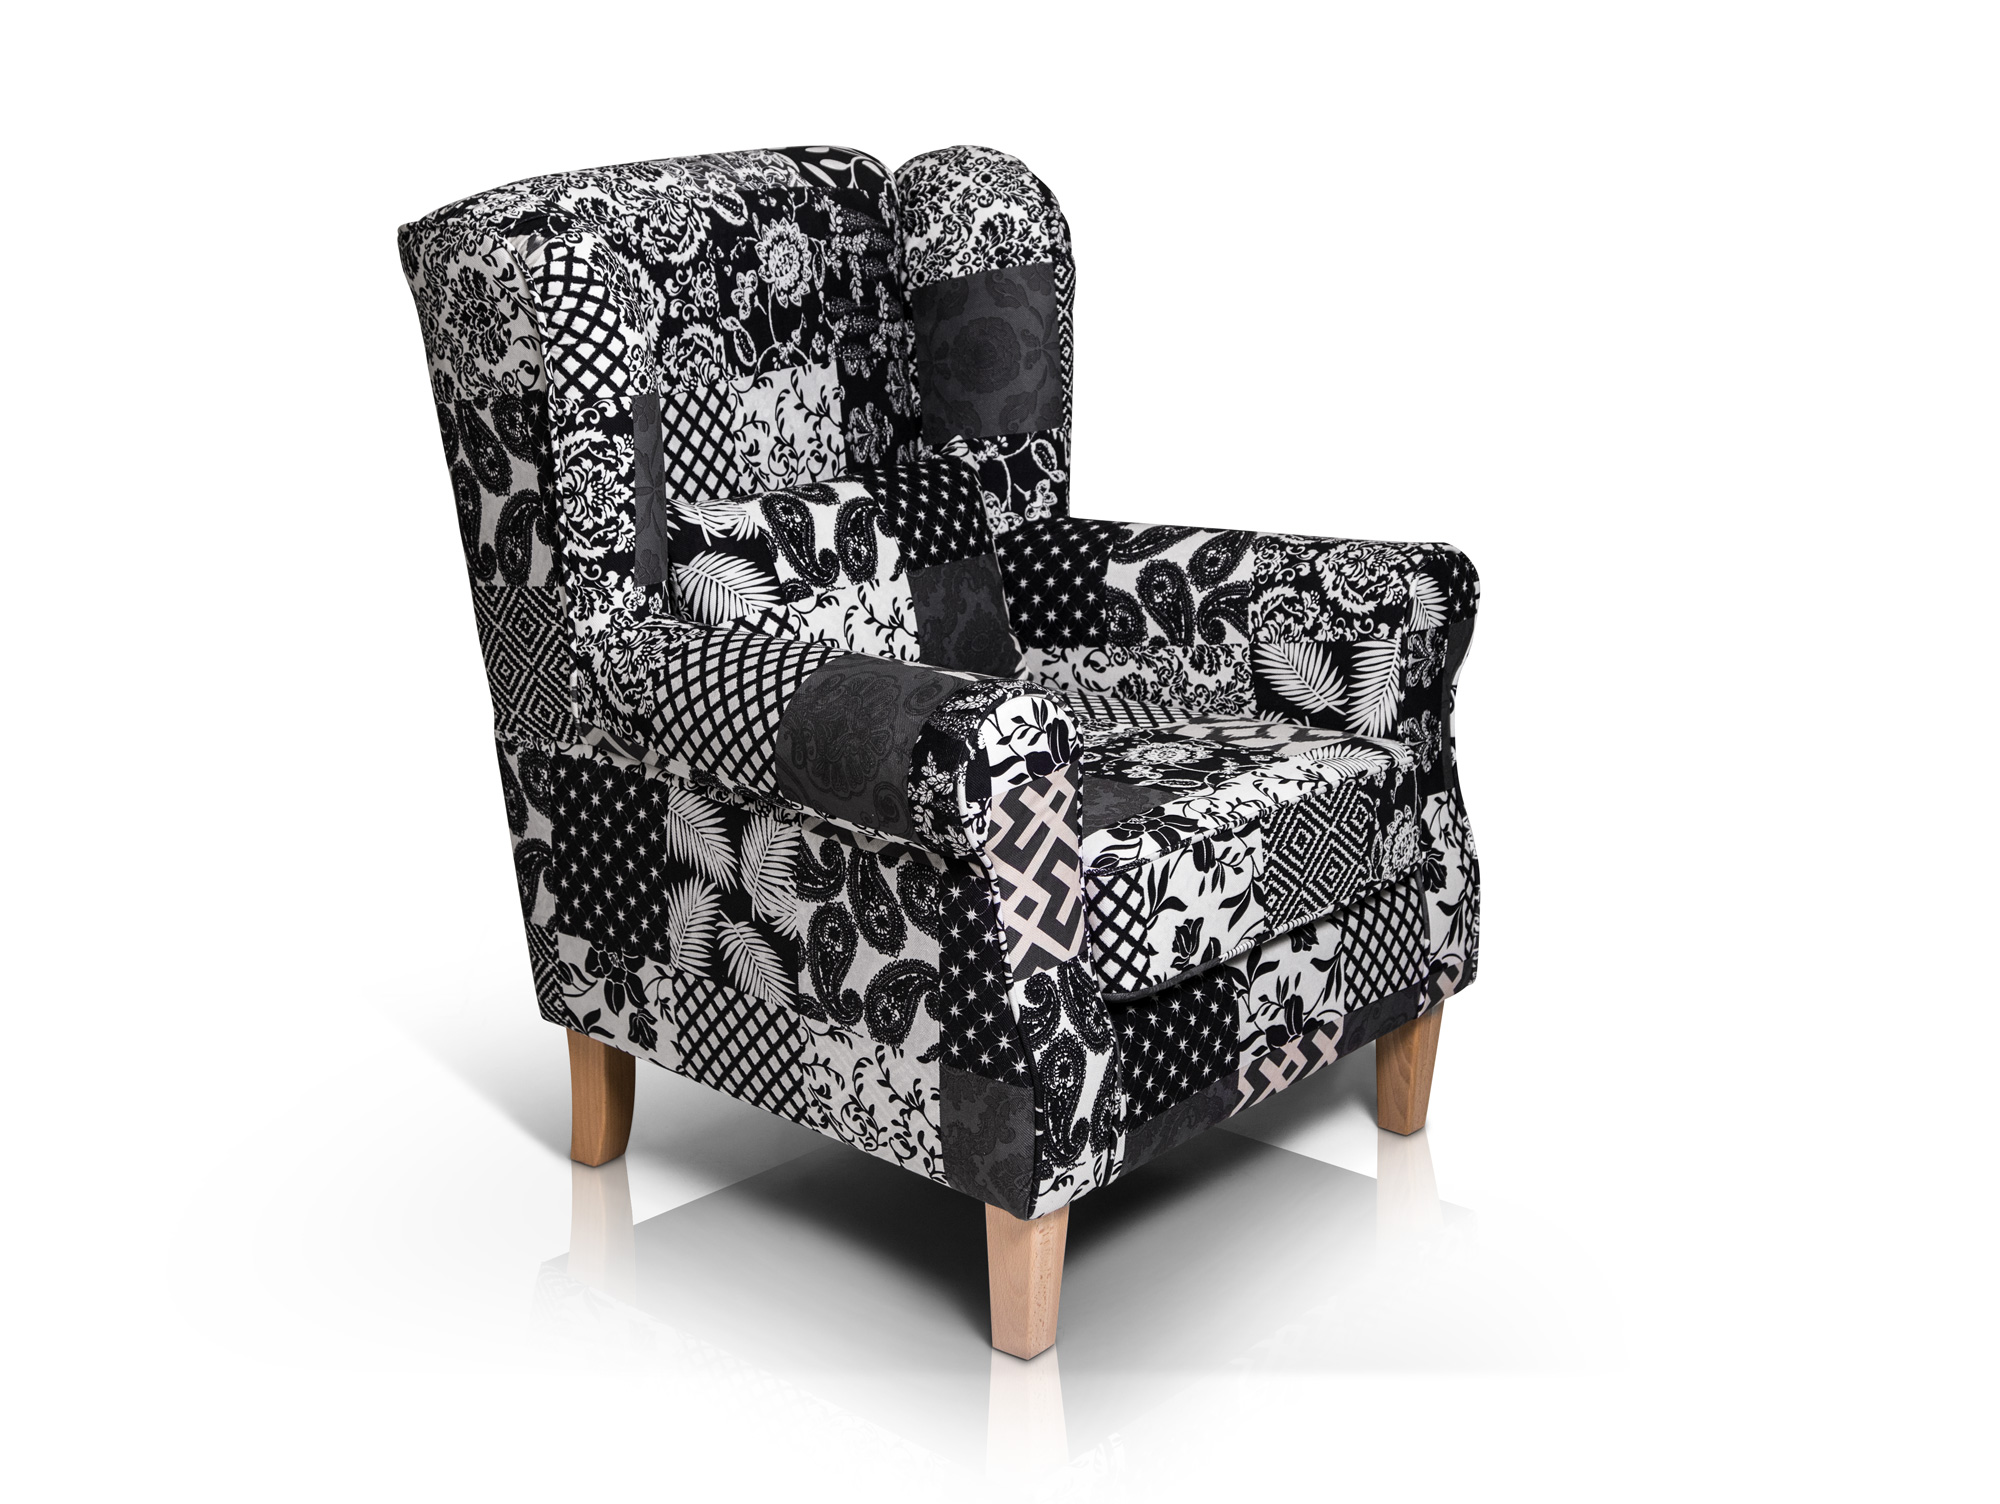 Patchwork Ohrensessel Mit Hocker Willy Ohrensessel 43 Hocker Patchwork Schwarz